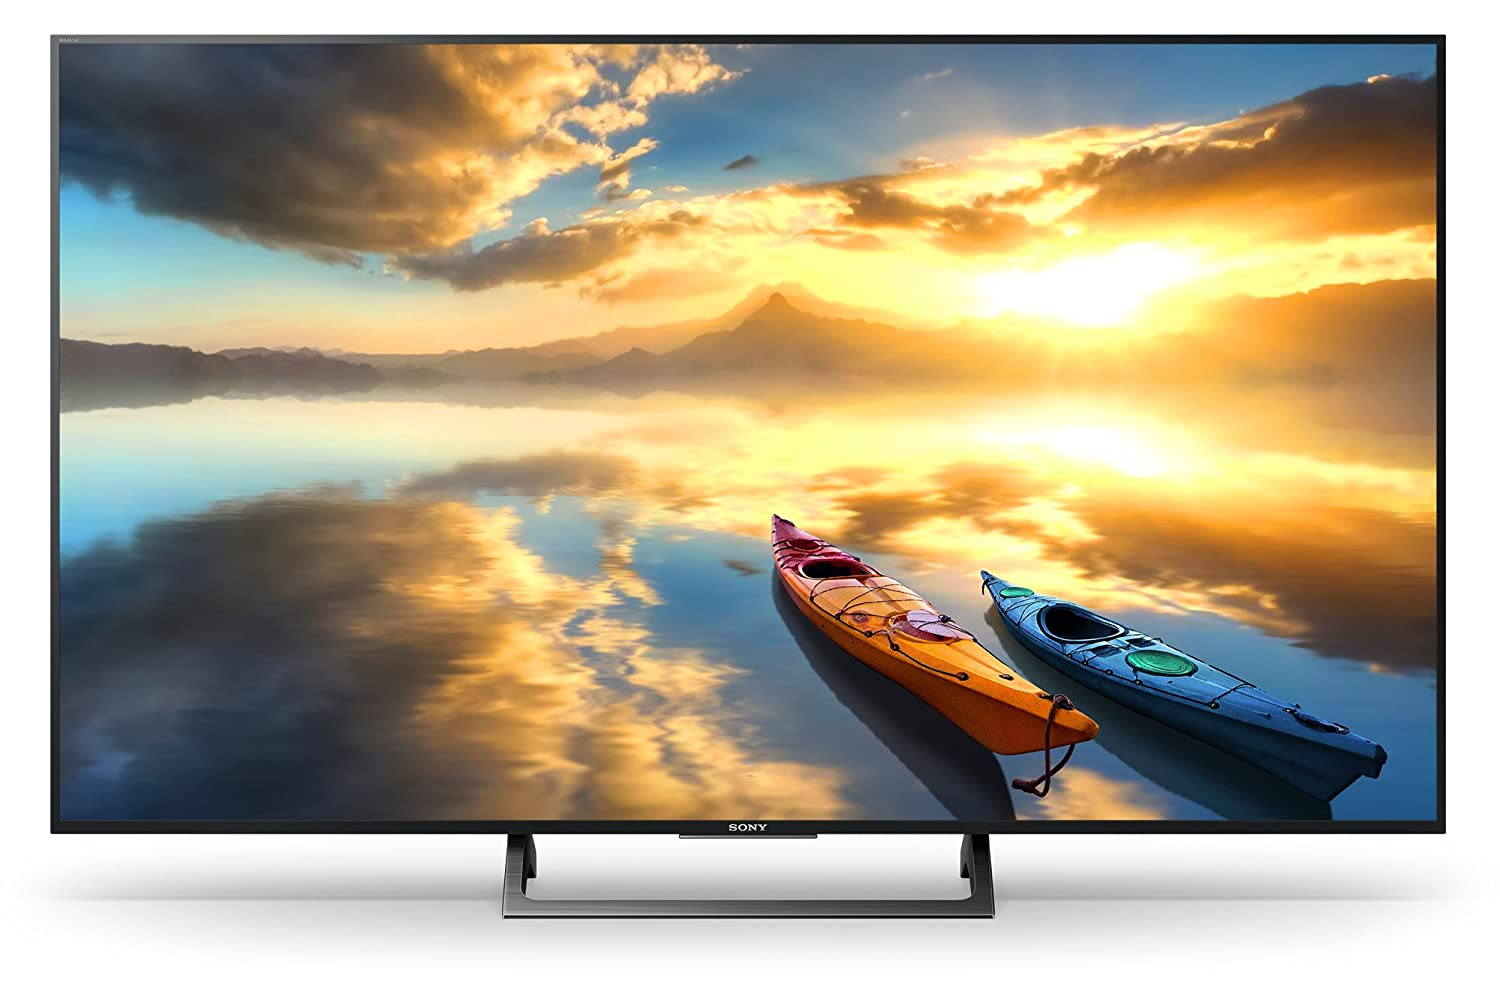 Sony KD65XE7004 TV Smart